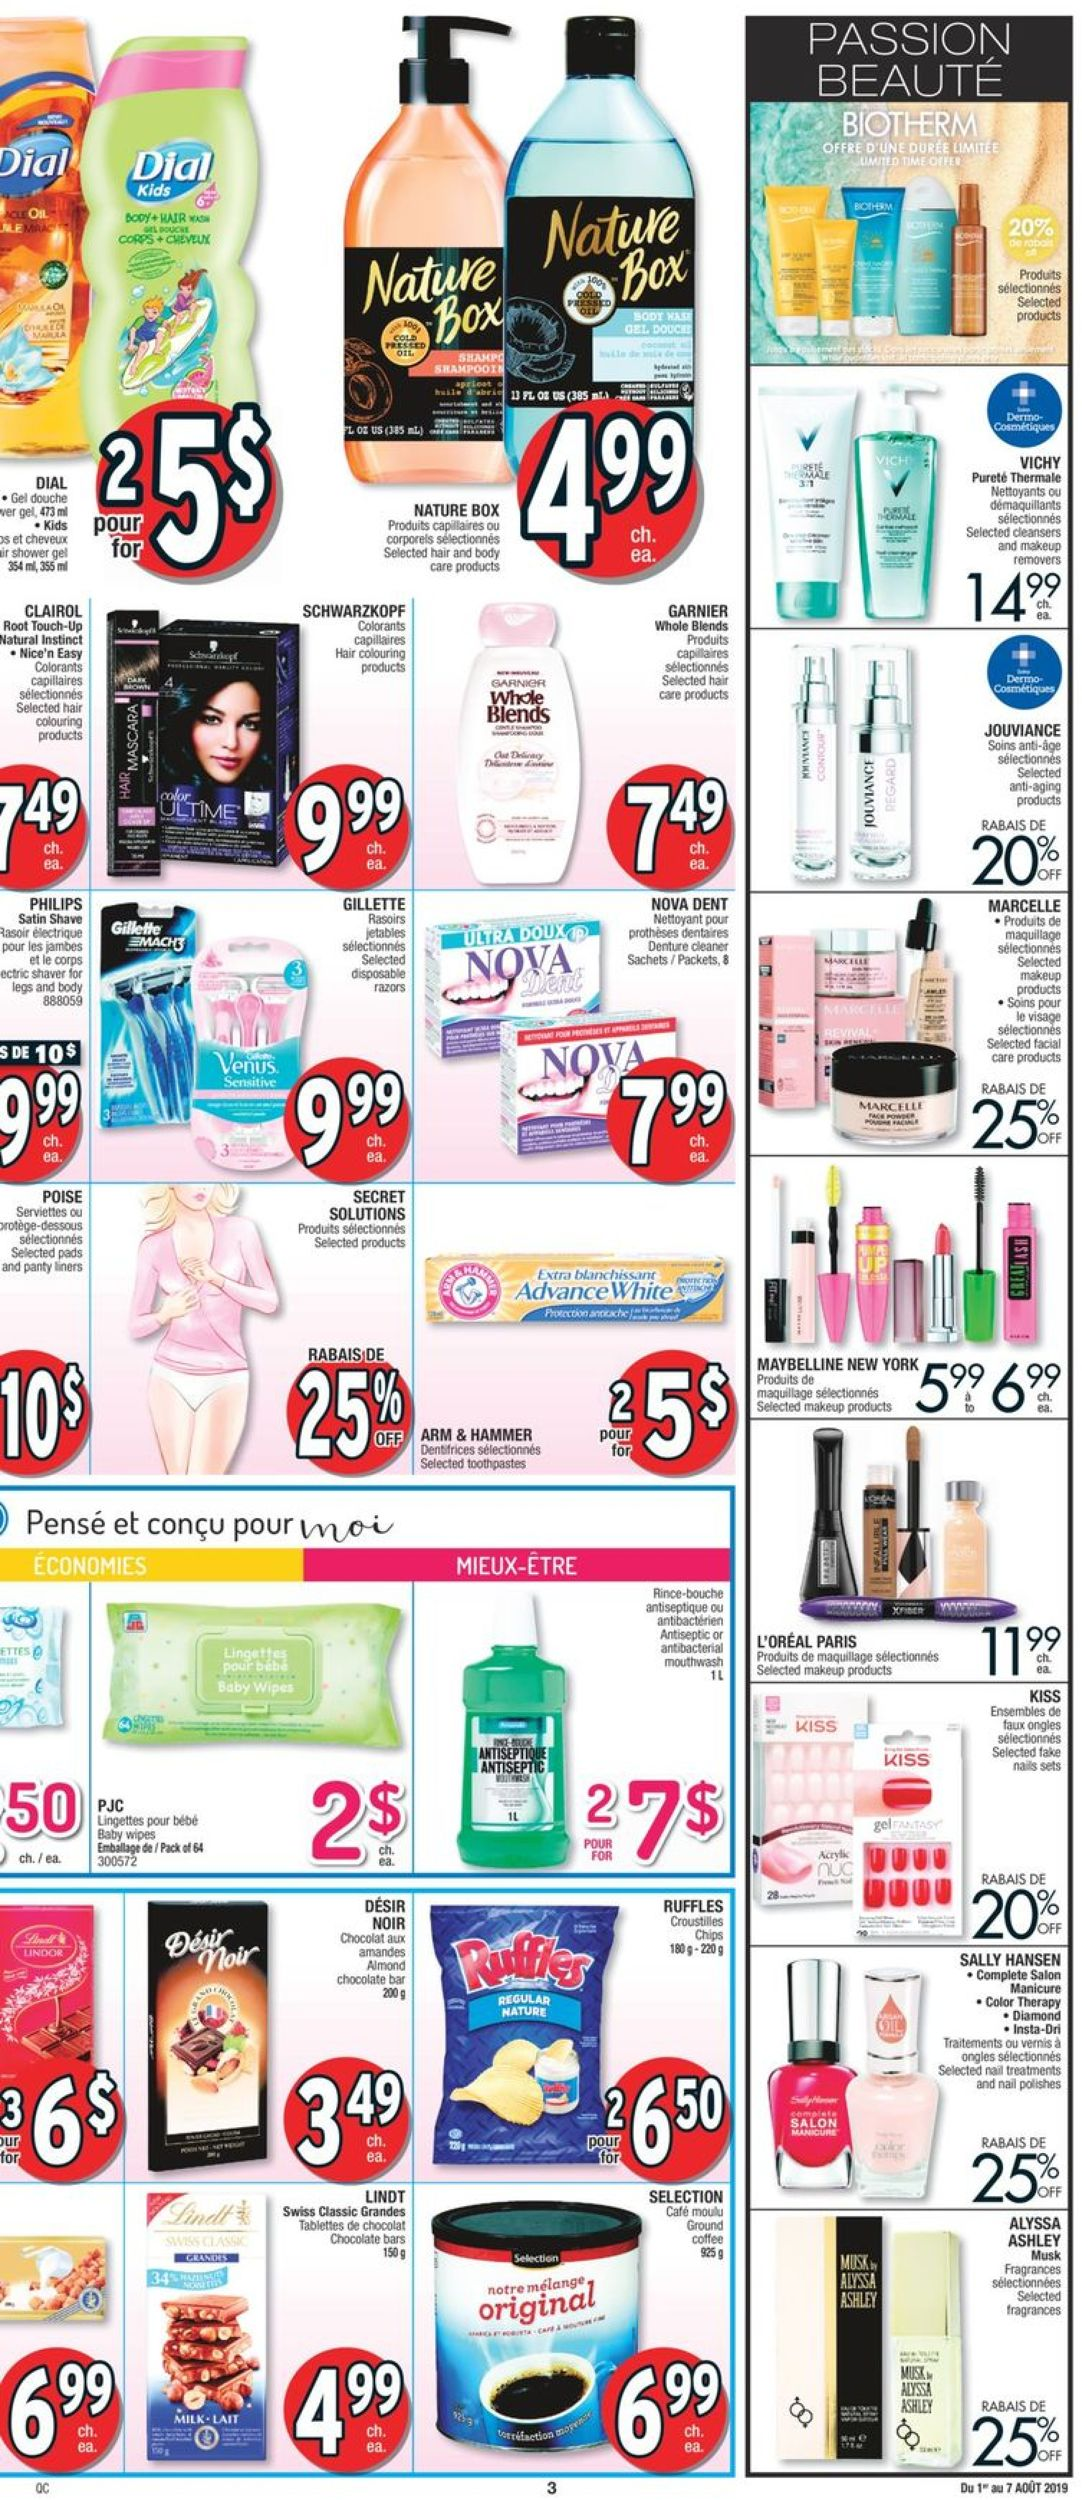 Jean Coutu Flyer - 08/01-08/07/2019 (Page 3)